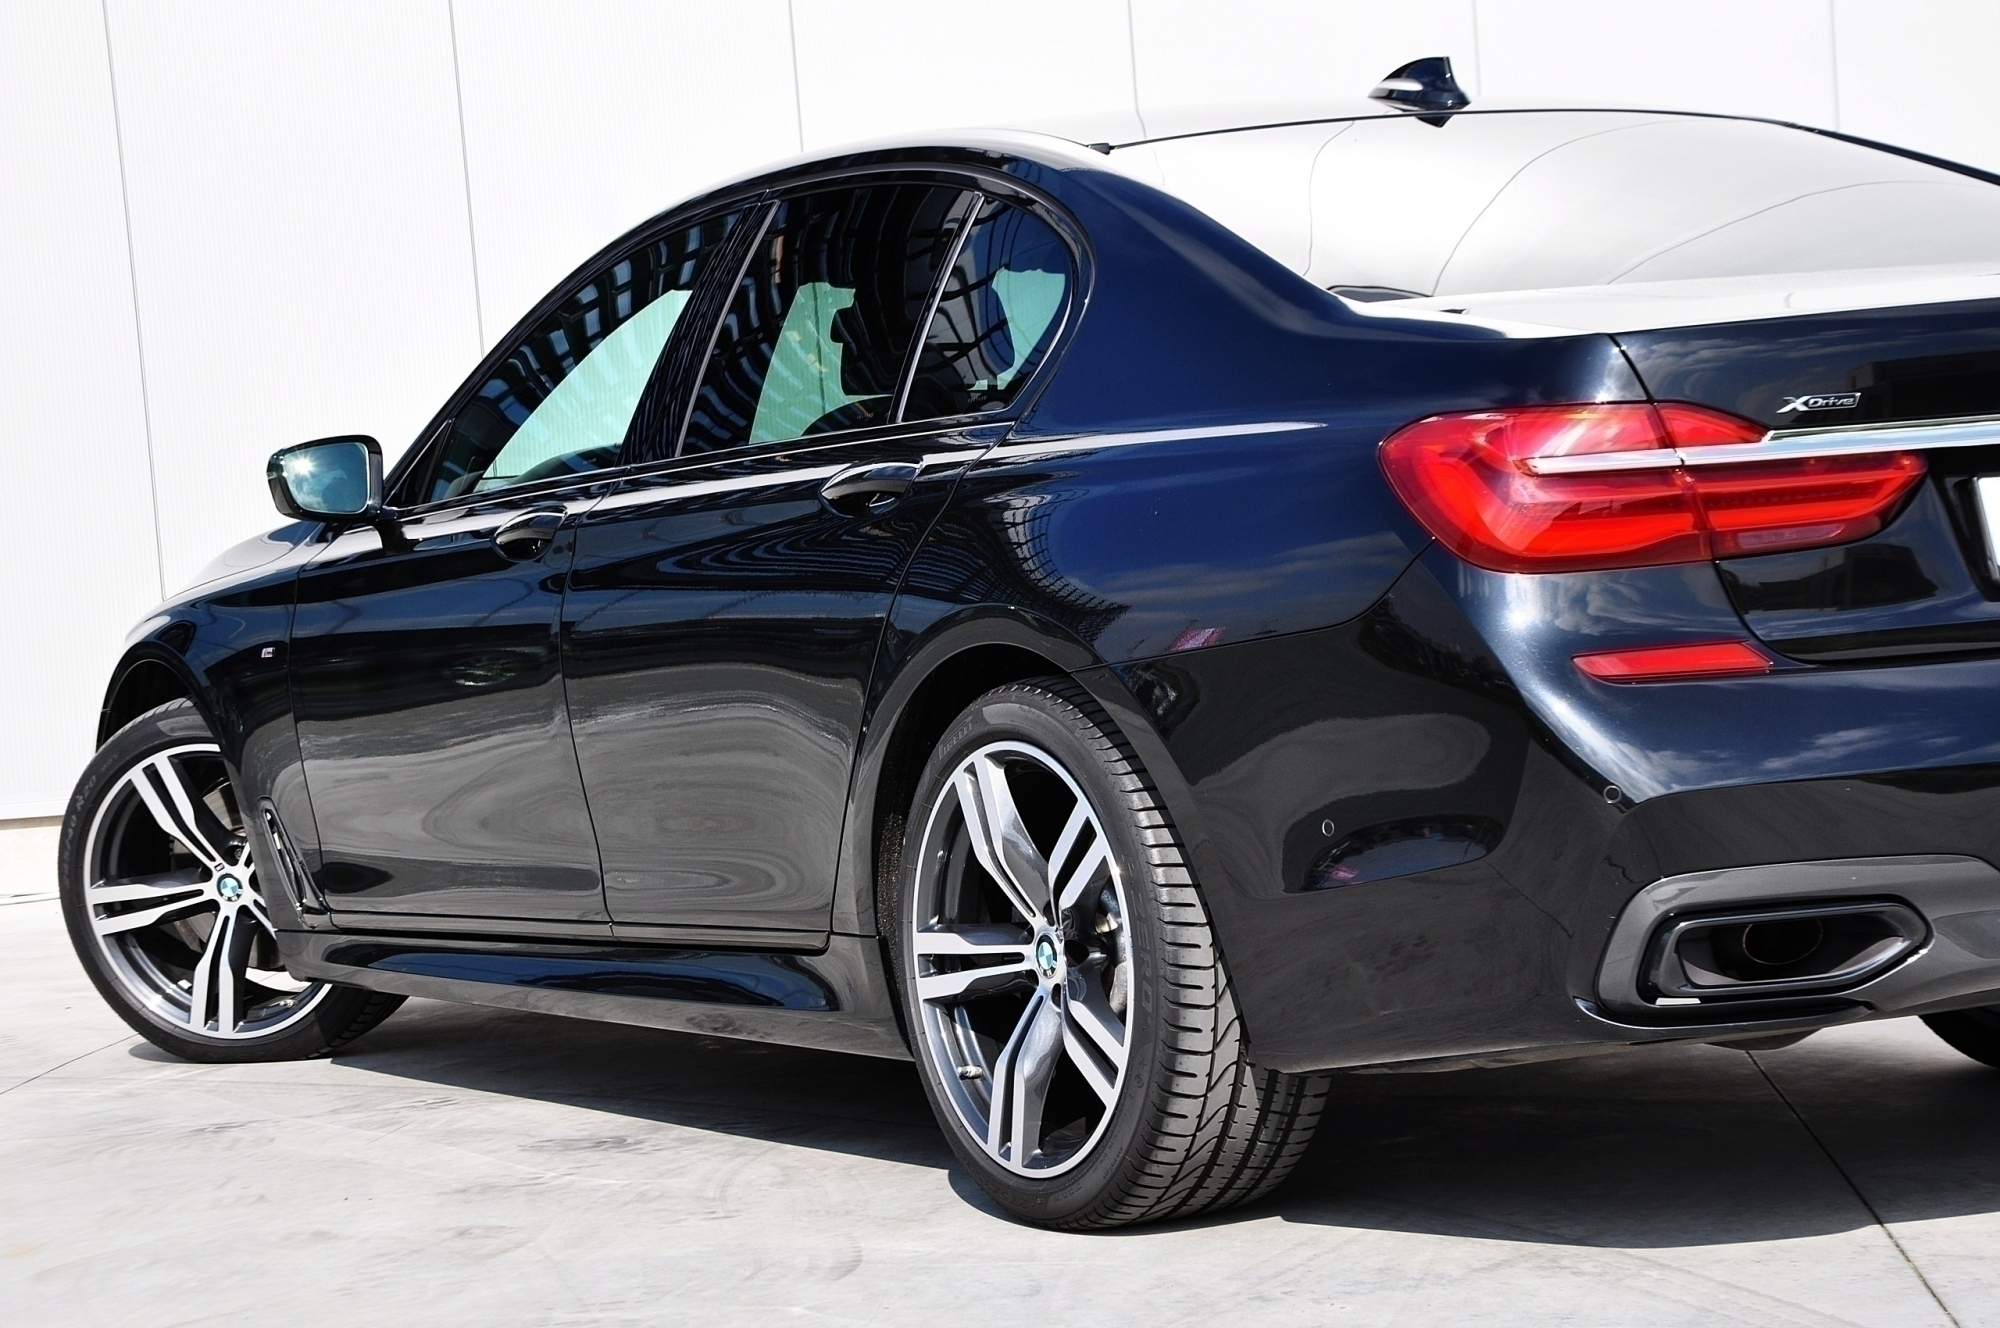 GDC Auto BMW 730 Xdrive - M-PACK - Full Option